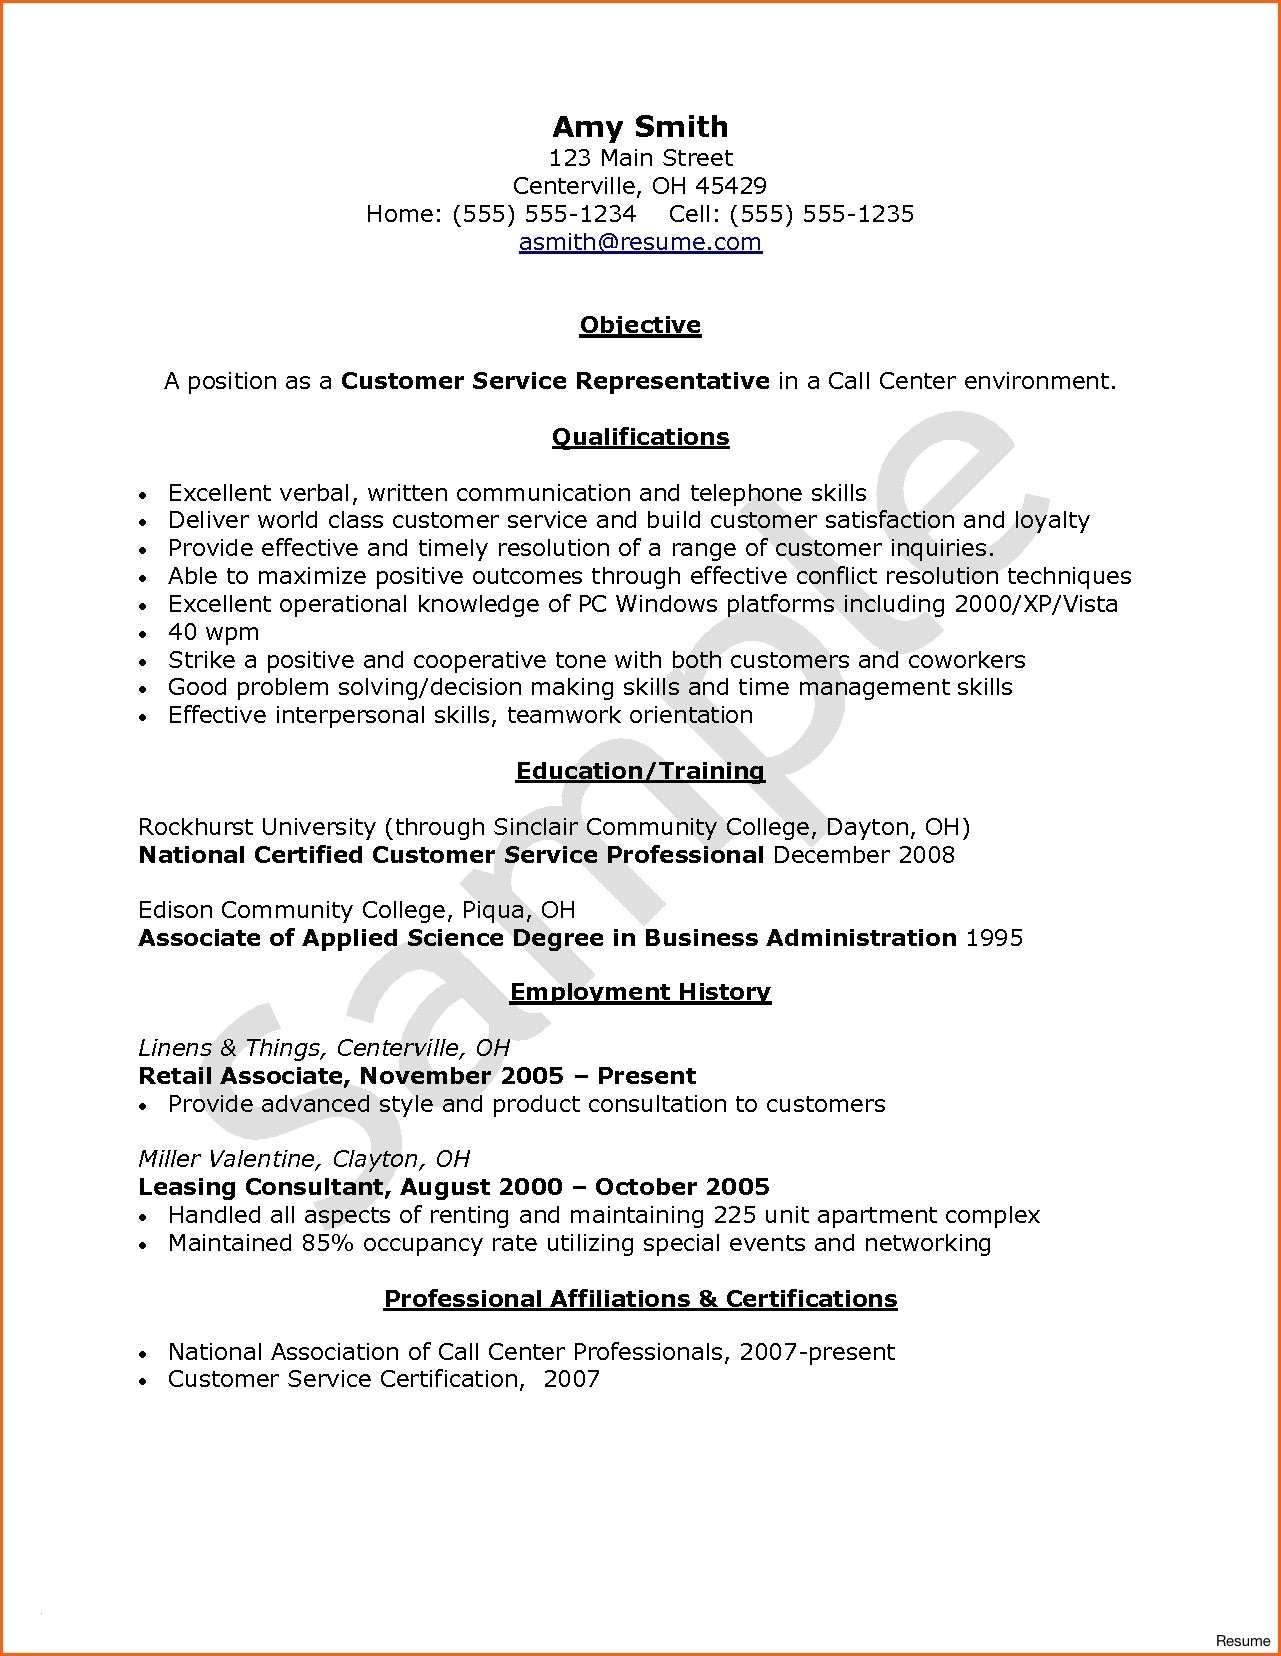 ultrasound resume template Collection-Call Center Resume Template Best Ultrasound Resume Template Awesome Basic Resume Template New Ivoice 9-i